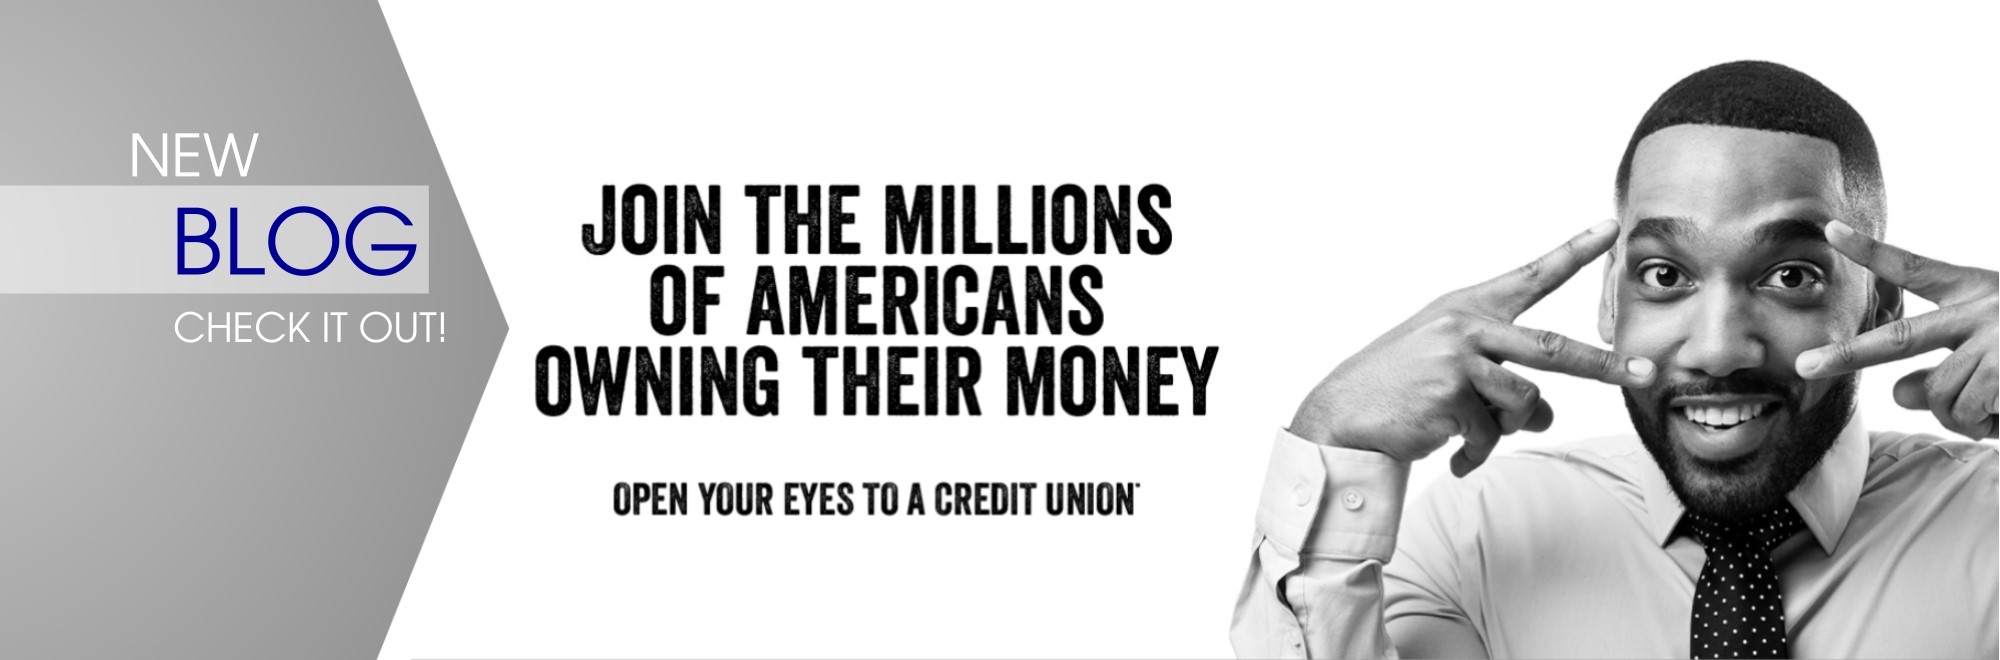 Join the millions of americans owning their money Open your eyes to a credit union